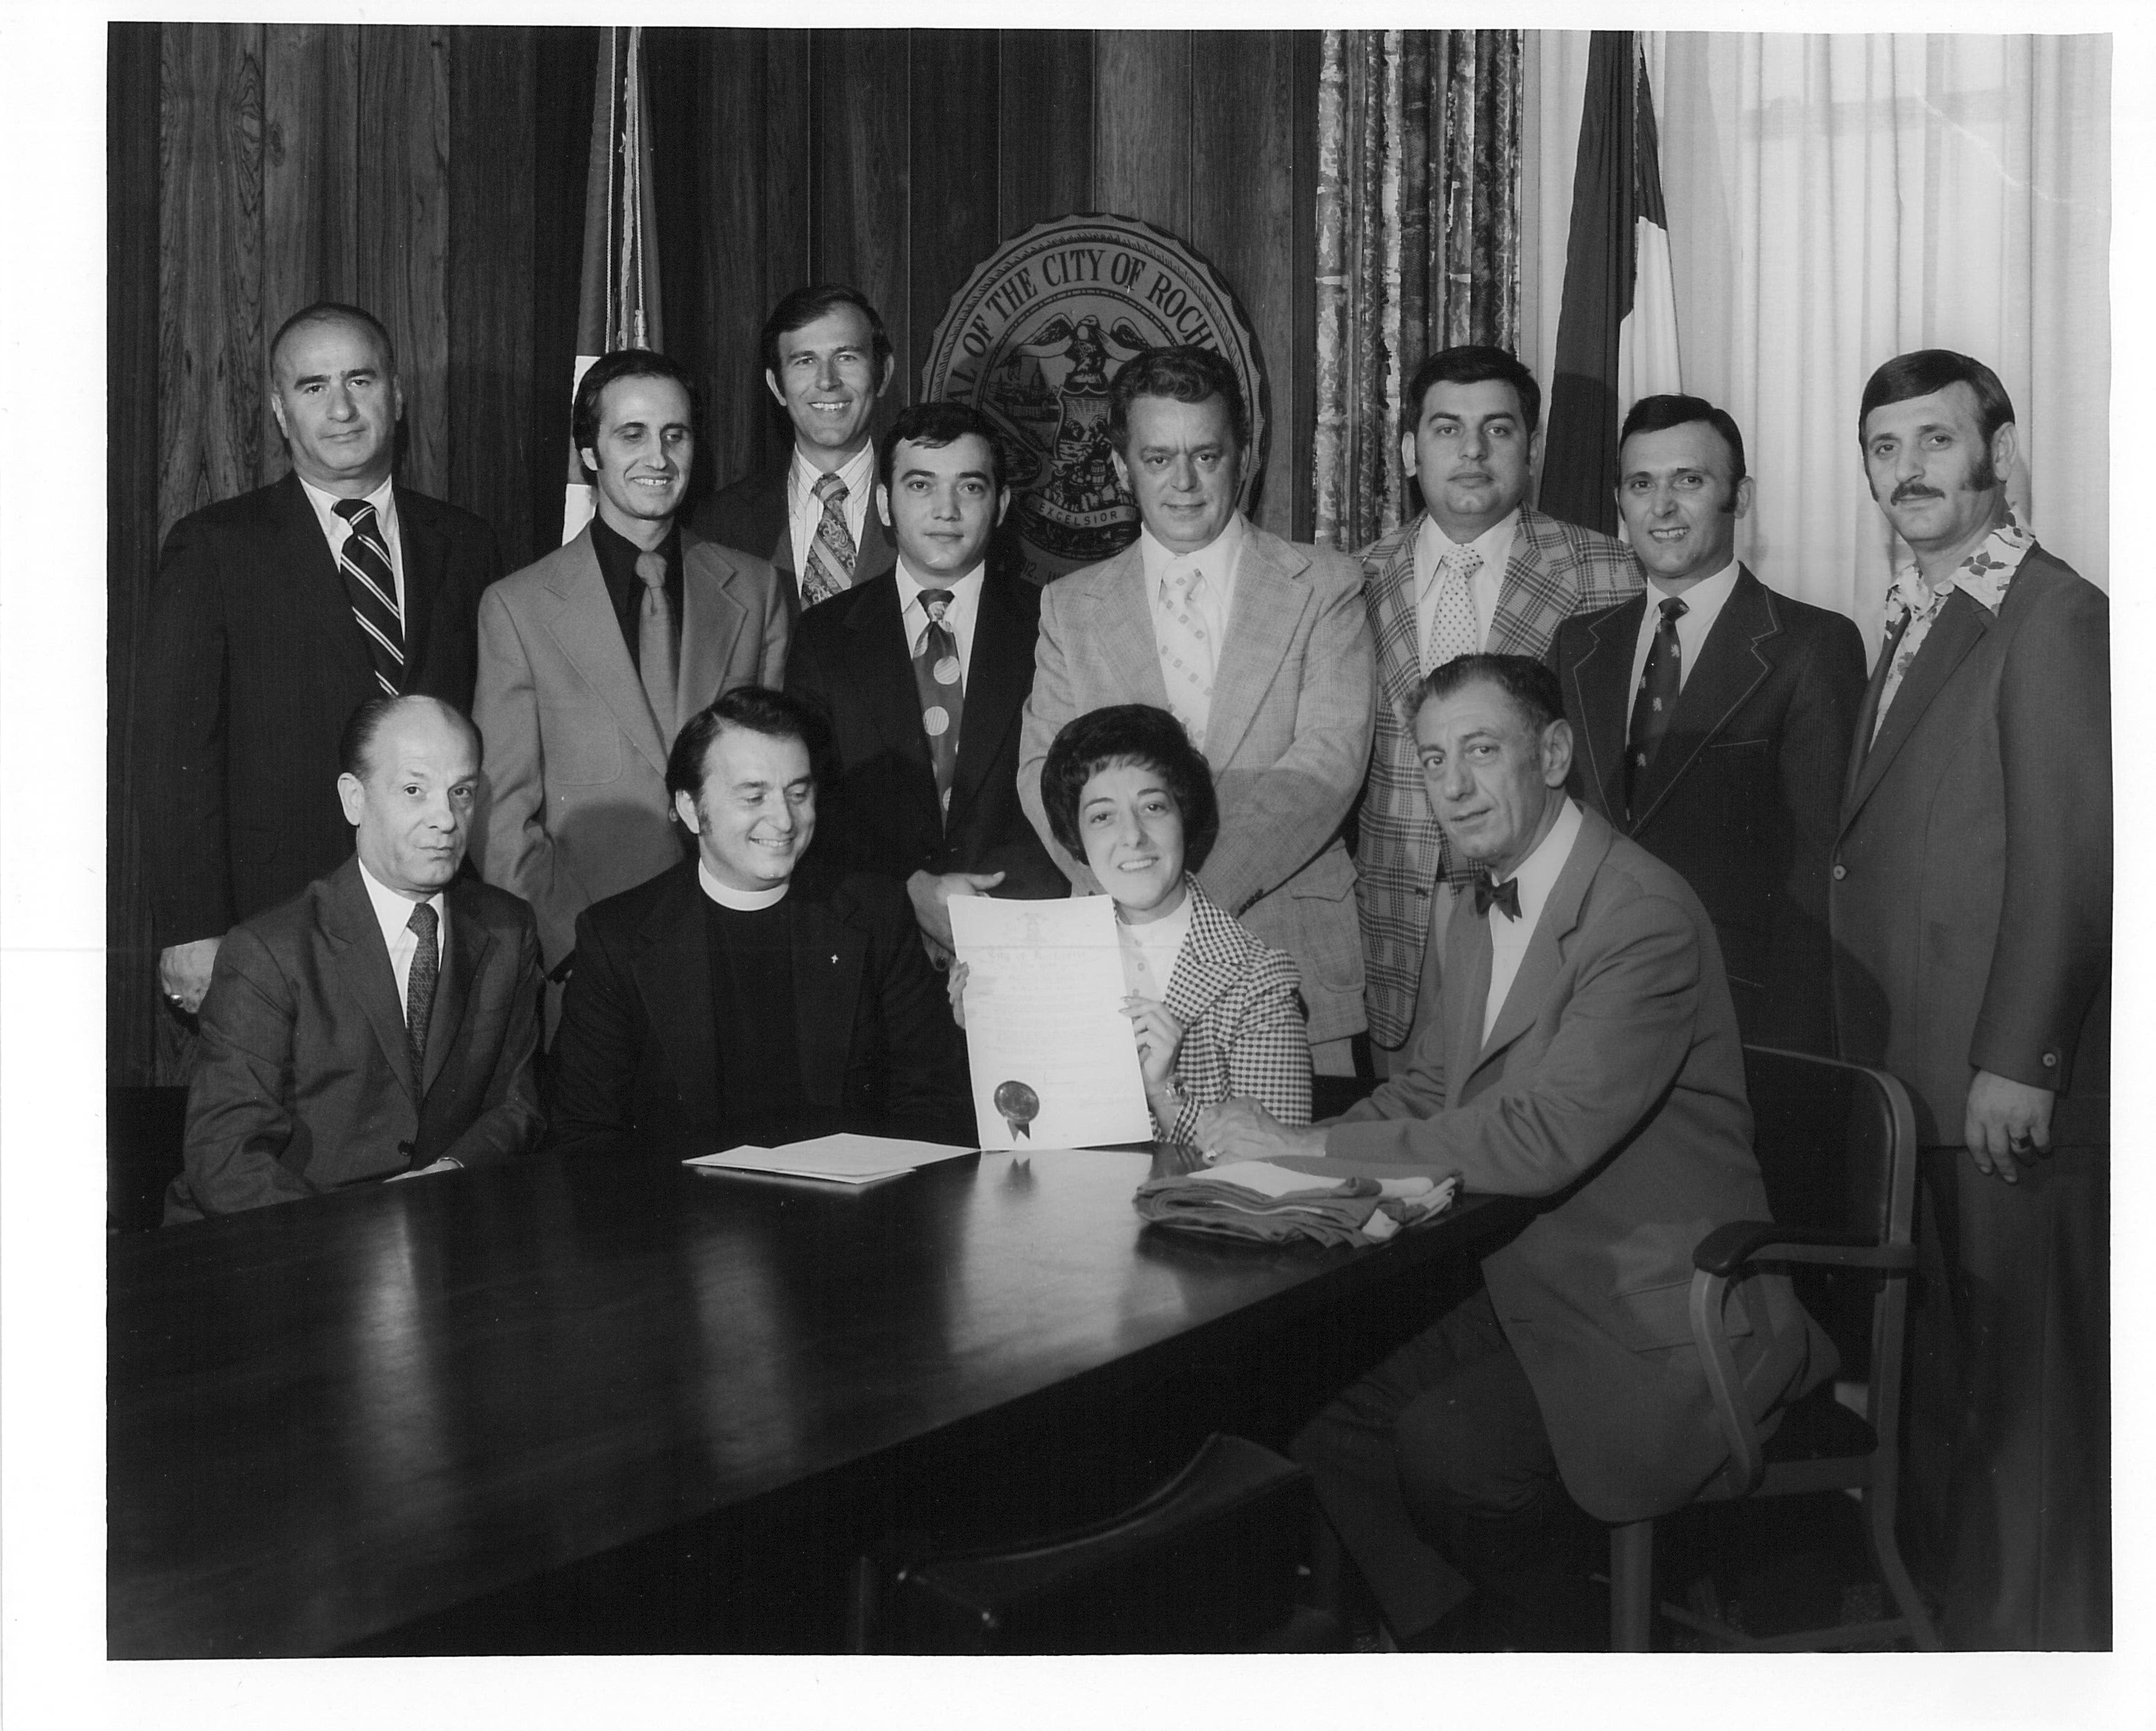 Photograph of Rochester City Council